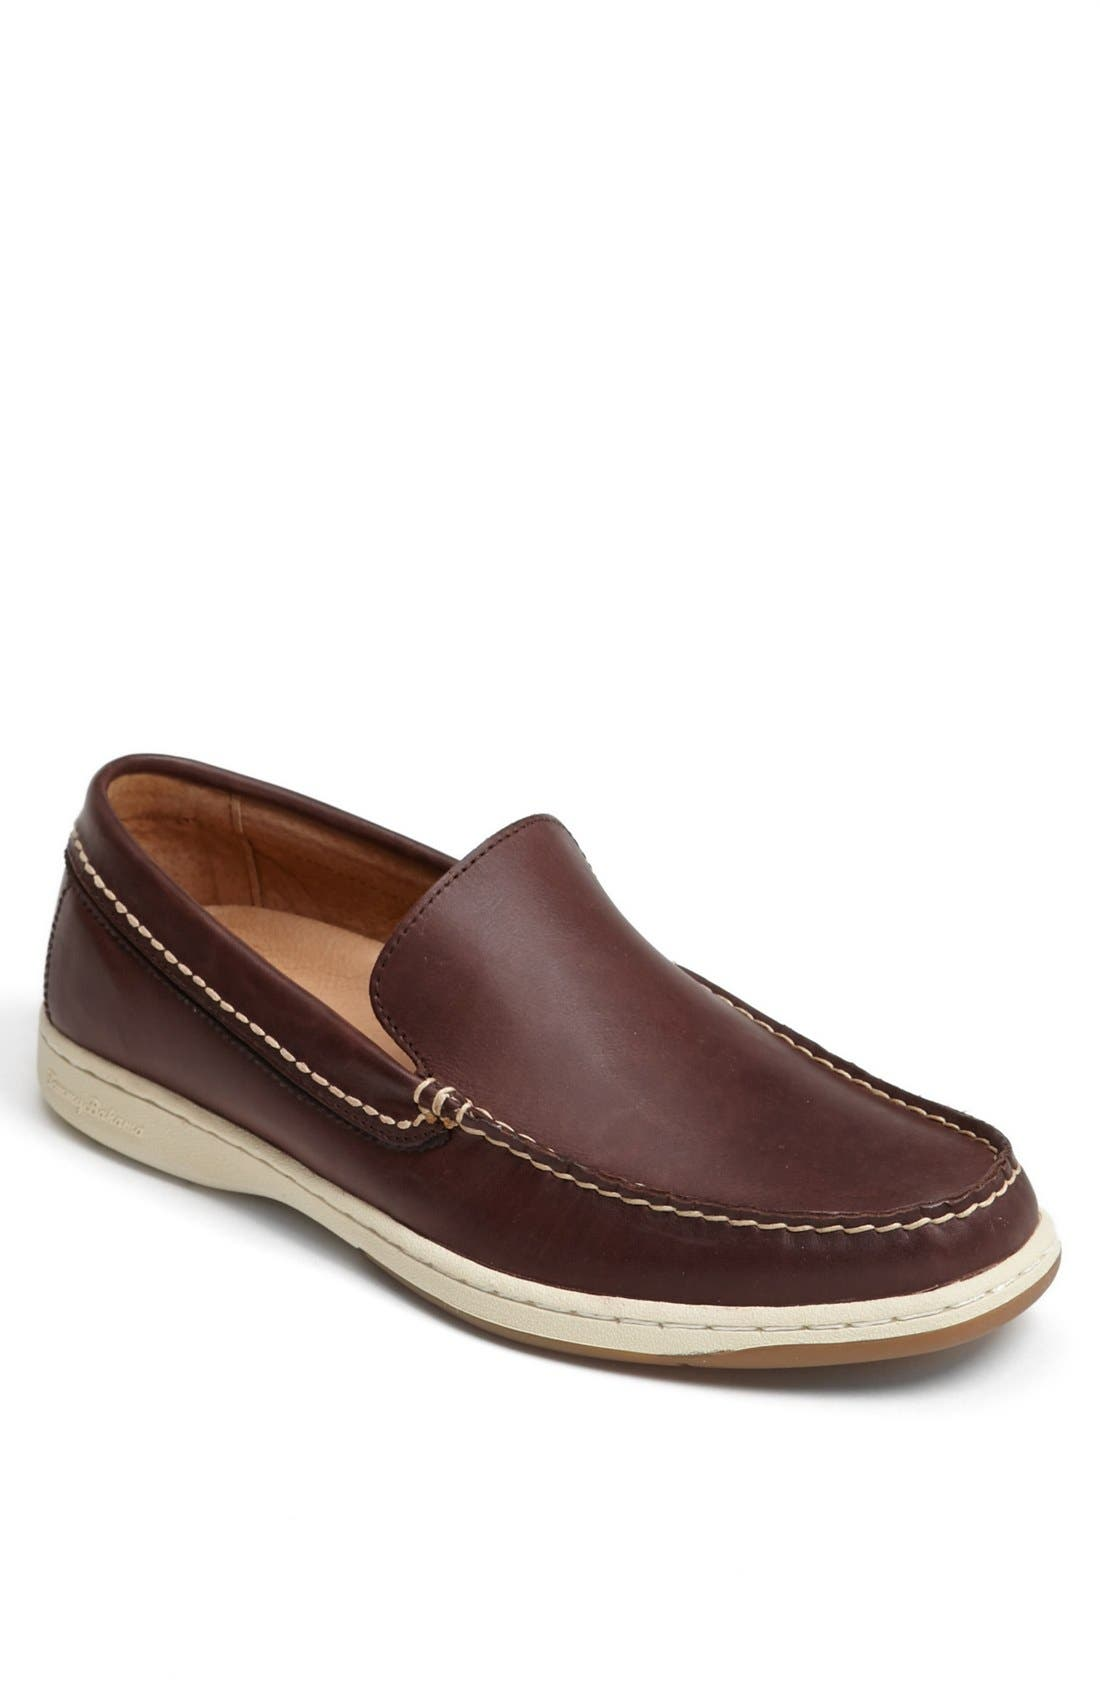 Main Image - Tommy Bahama 'Alexander' Slip-On